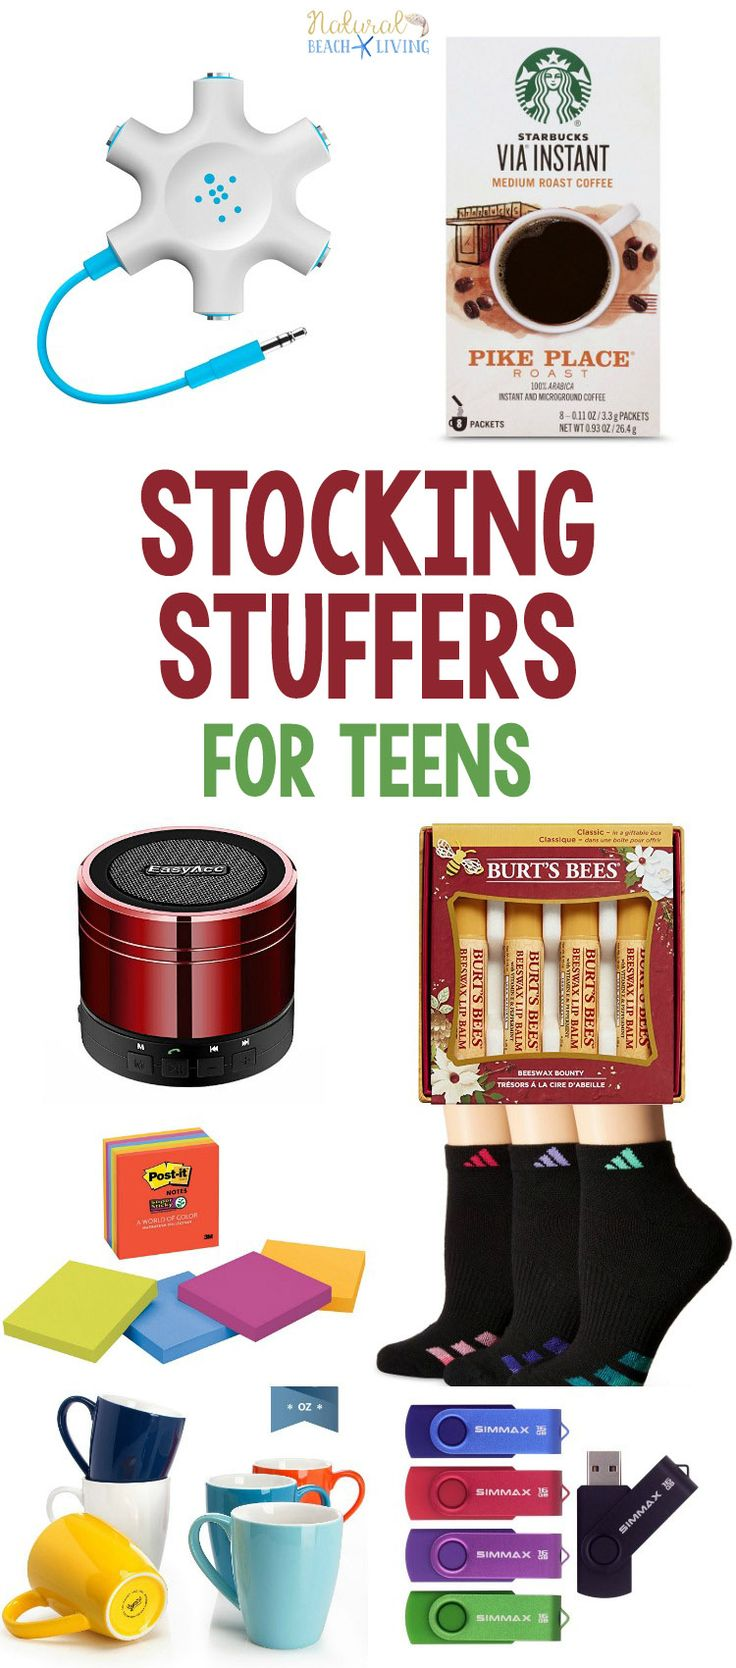 24 Epic Stocking Stuffers for Teens, Best Stocking Stuffers for Teenage Boys, Best Stocking Stuffers for Teenage Girls, Stocking Stuffers for tweens, Gift ideas, Stocking Stuffers for College Students, #giftideas #gifts #stockingstuffers #teenagers